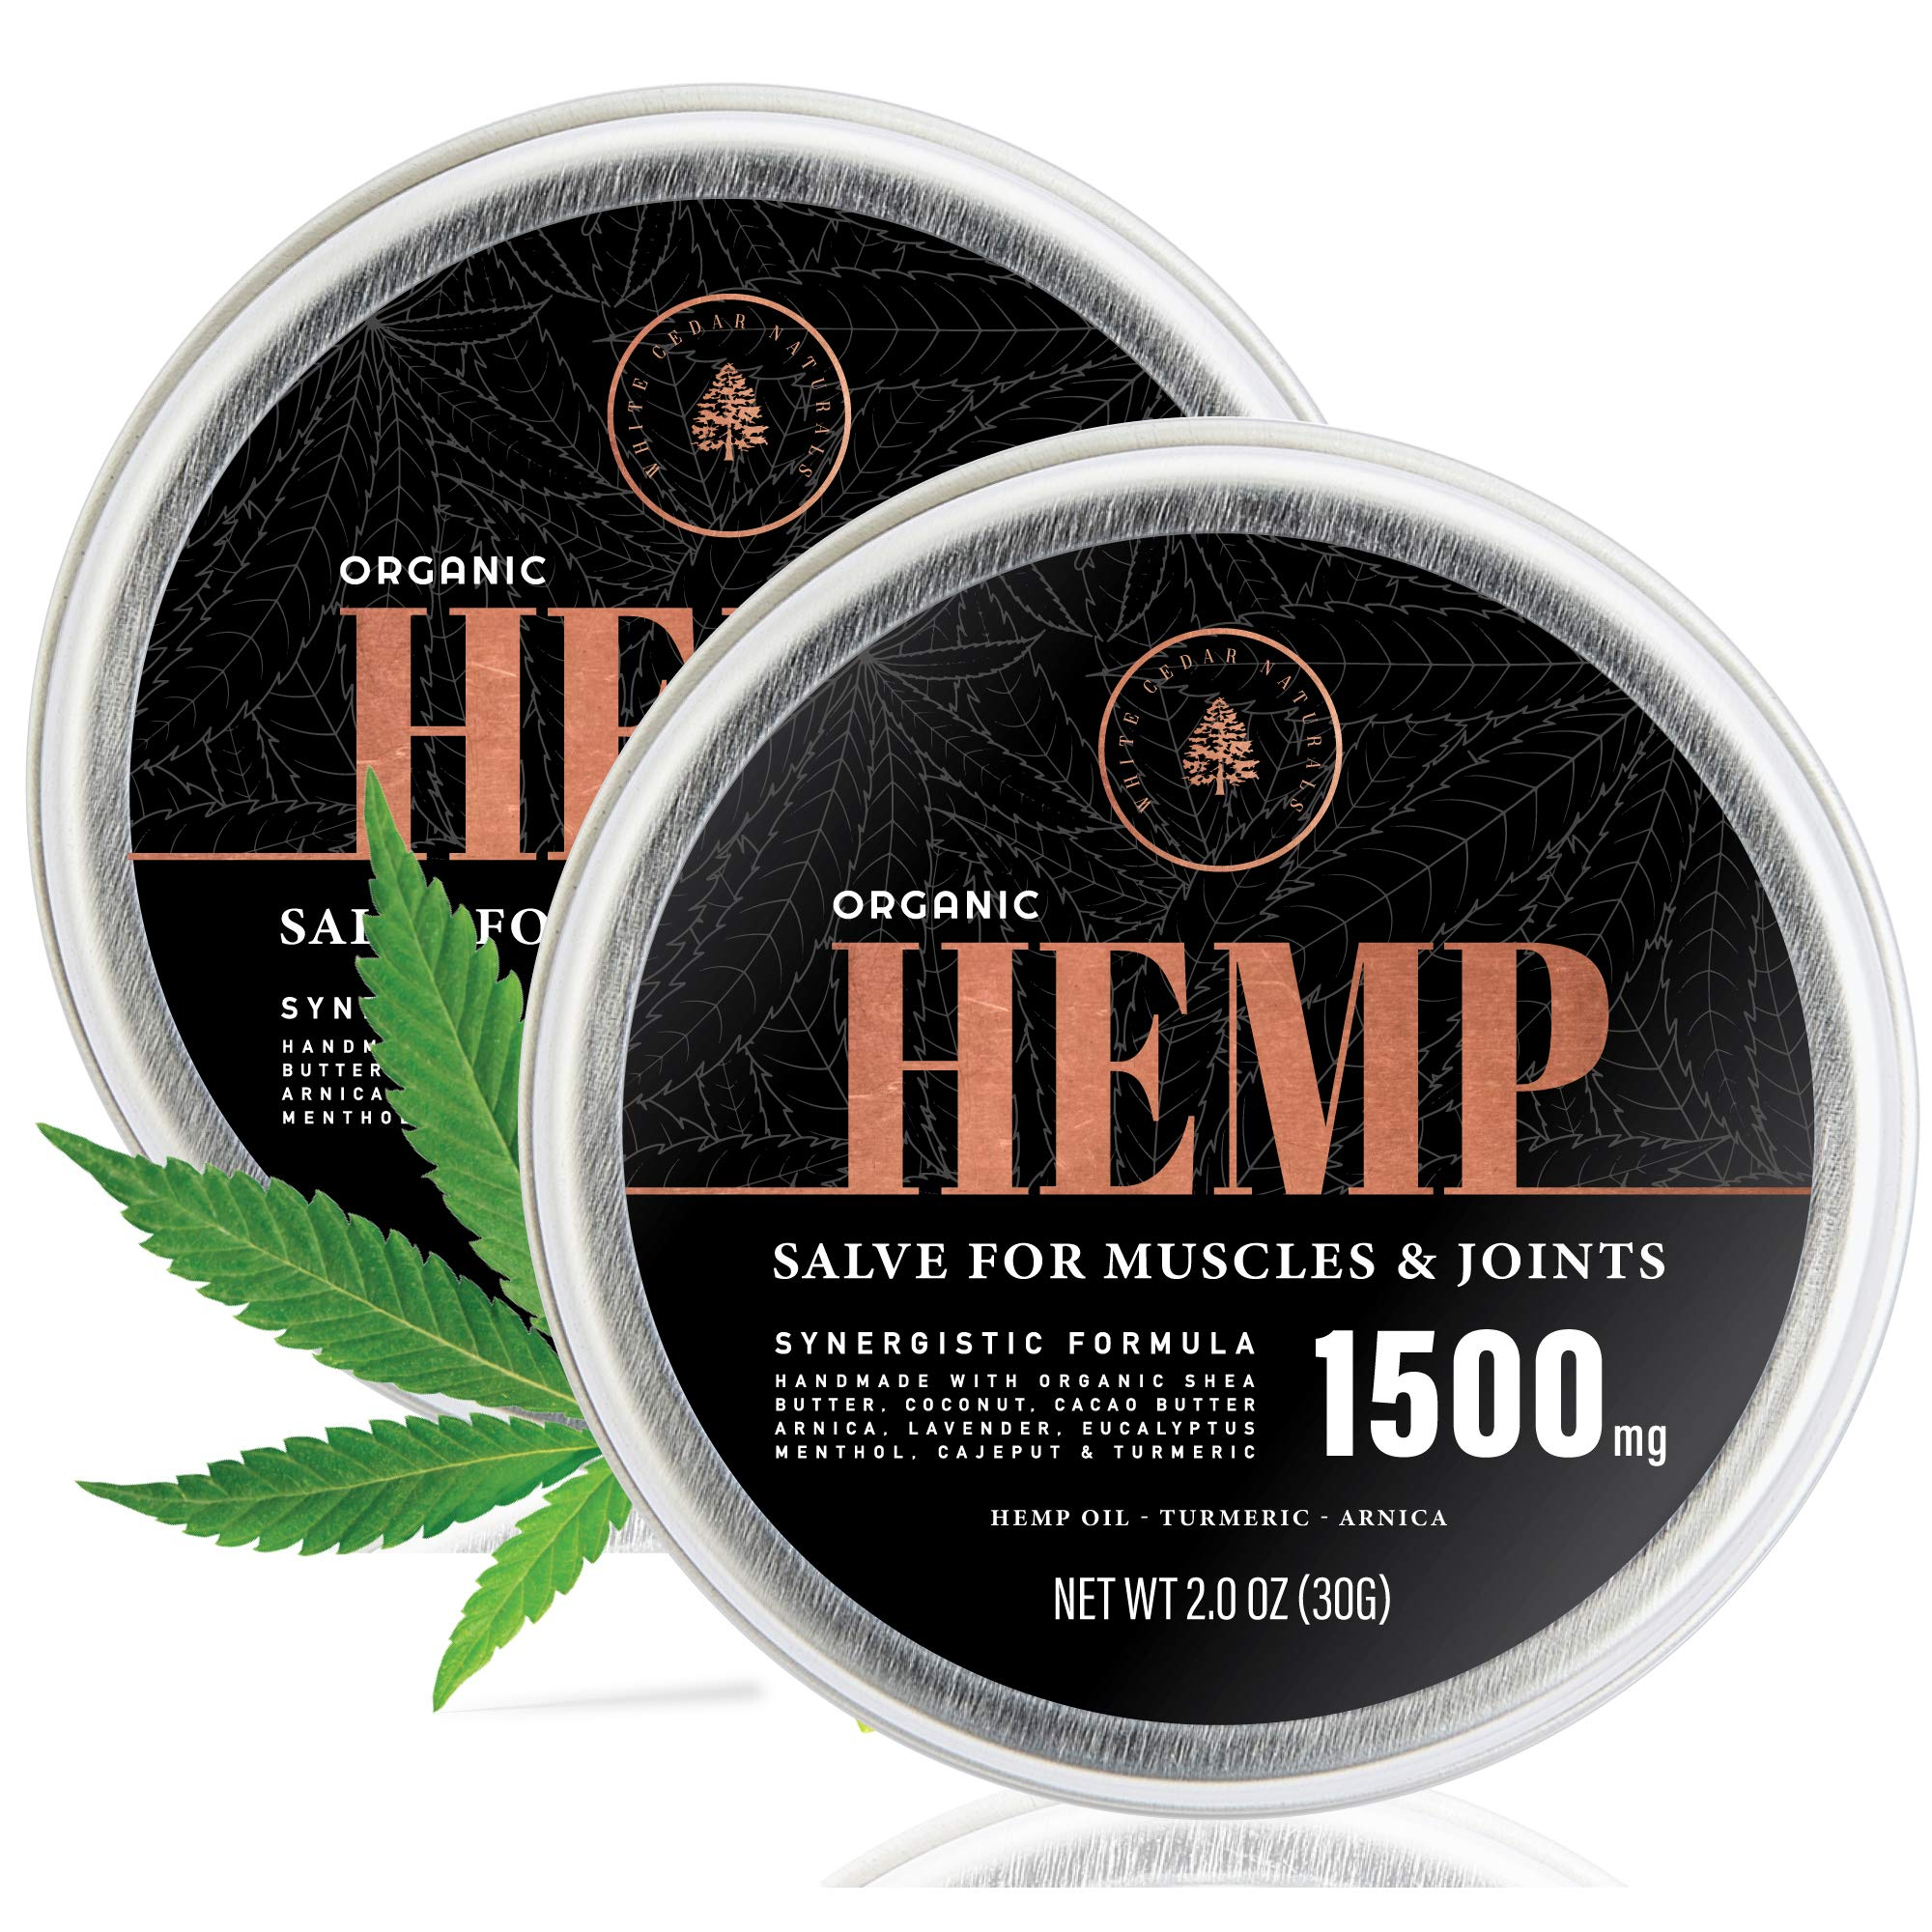 (2-Pack) Organic Hemp Salve - 1500MG - Anti Inflammatory Cream for Back, Joints & Muscles - Handmade Pain Relief Rubs with Arnica Montana, Menthol, Aloe Leaf, Shea Butter & Turmeric - 2oz by CBD Oil for Pain Relief Research Lab